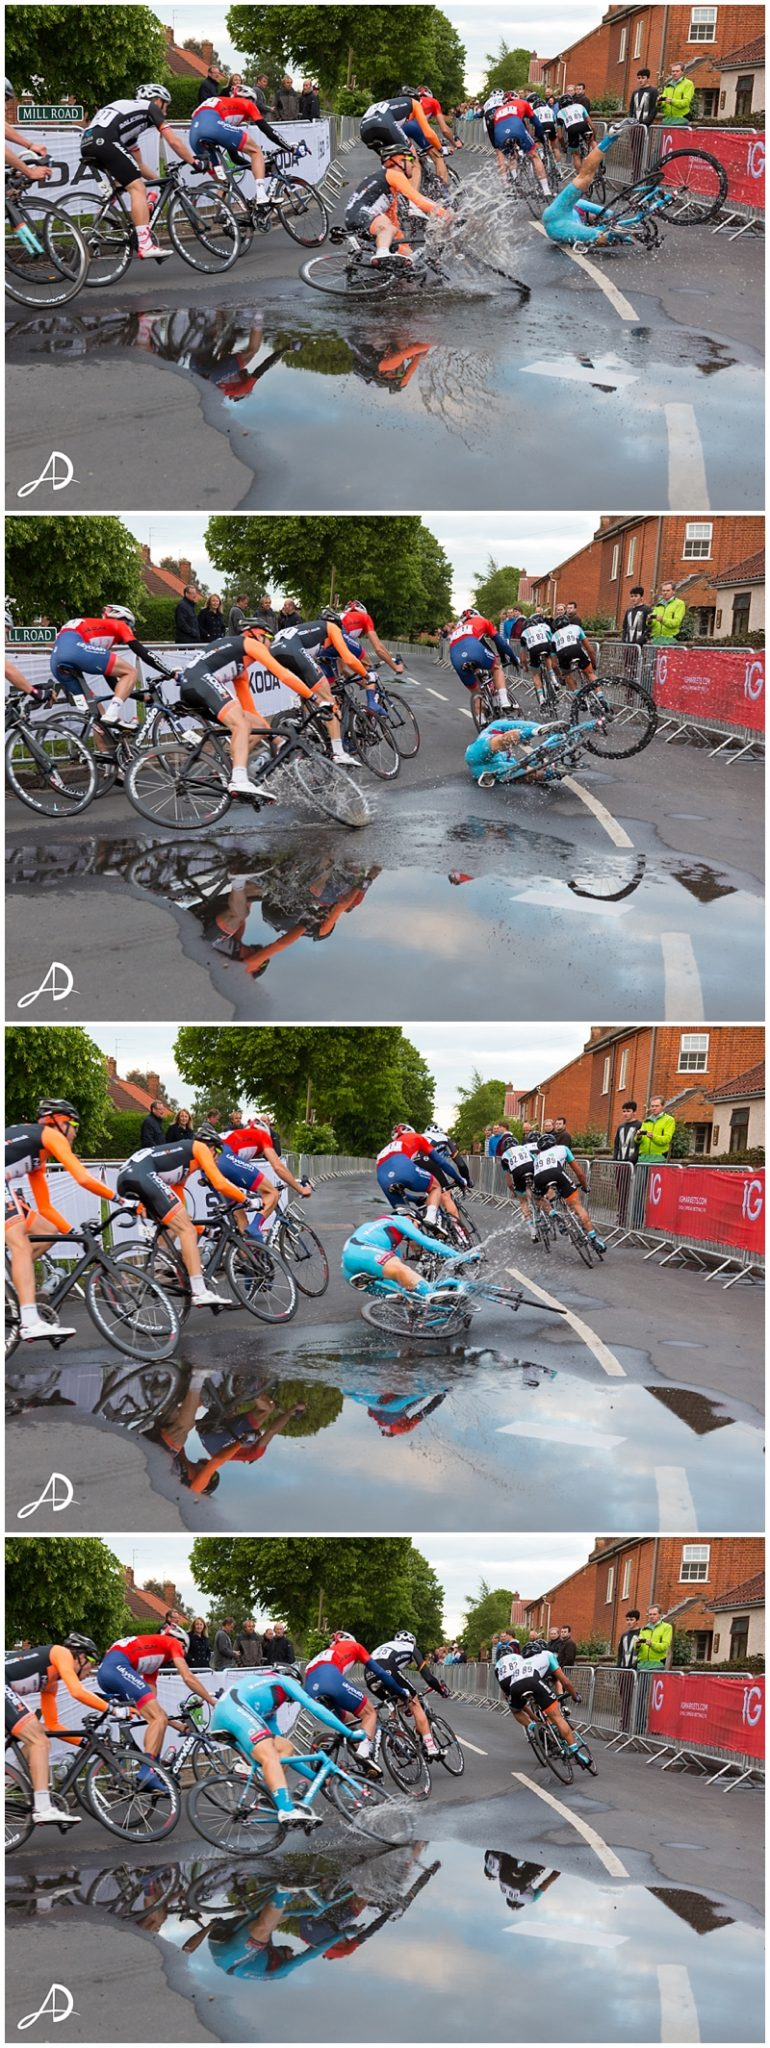 CYCLE TOUR SERIES EVENT IN AYLSHAM - NORFOLK EVENT PHOTOGRAPHER 33